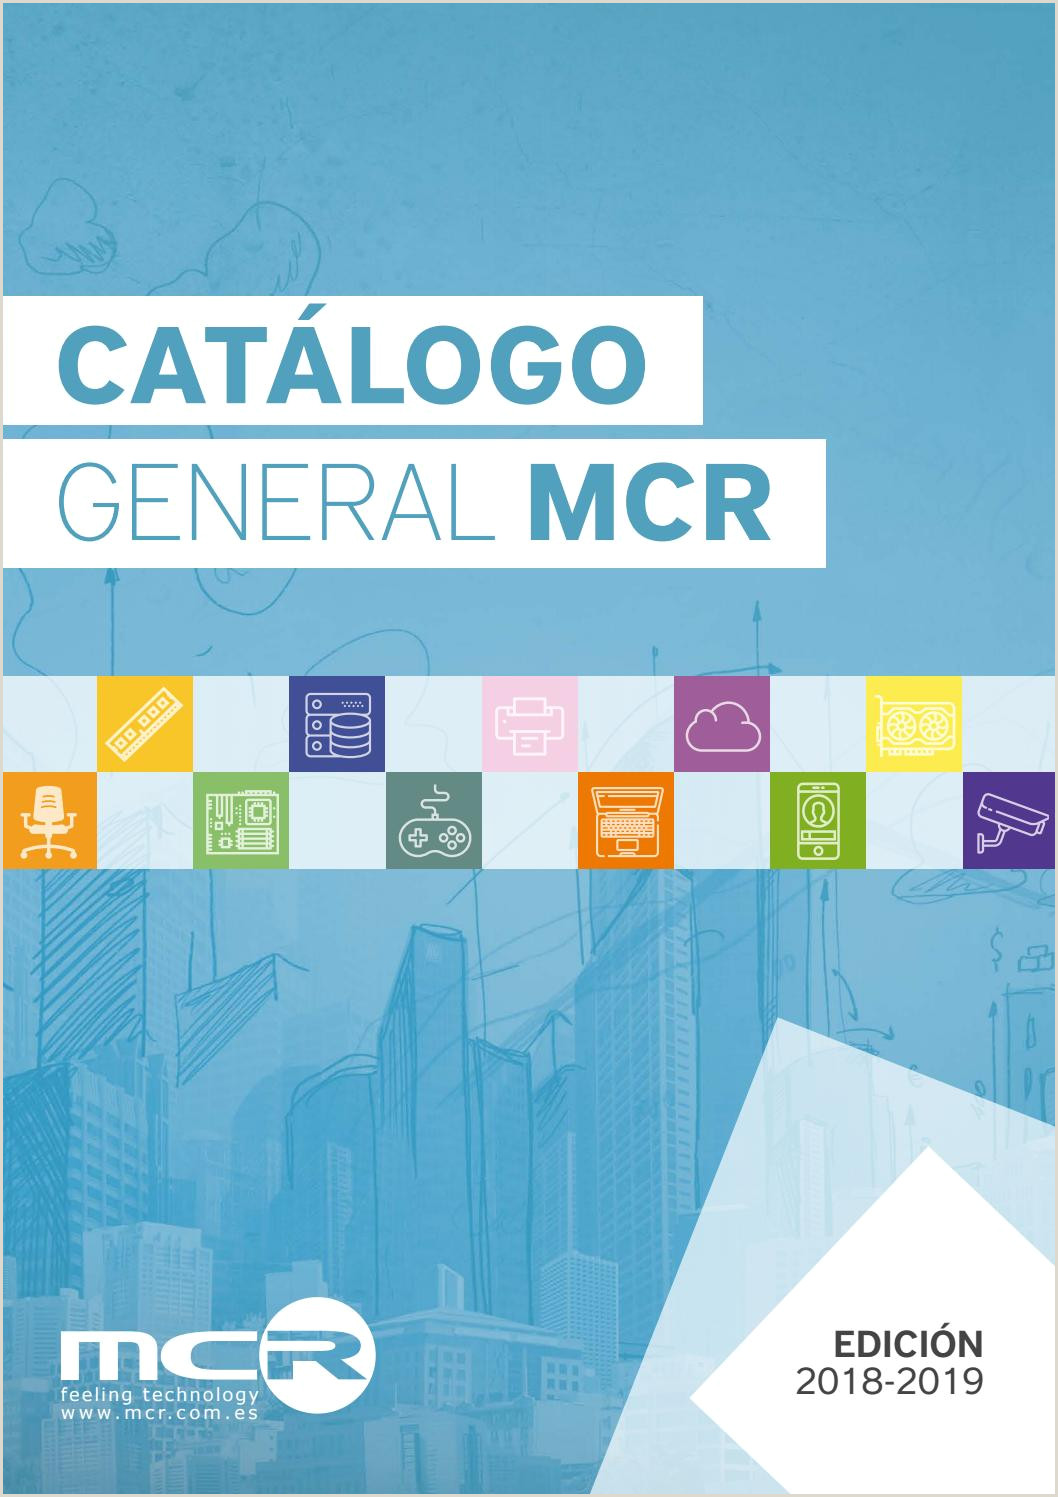 Formato Unico De Hoja De Vida Funcion Publica Modificable Catálogo General Mcr 2018 2019 by Mcr Infoelectronic issuu